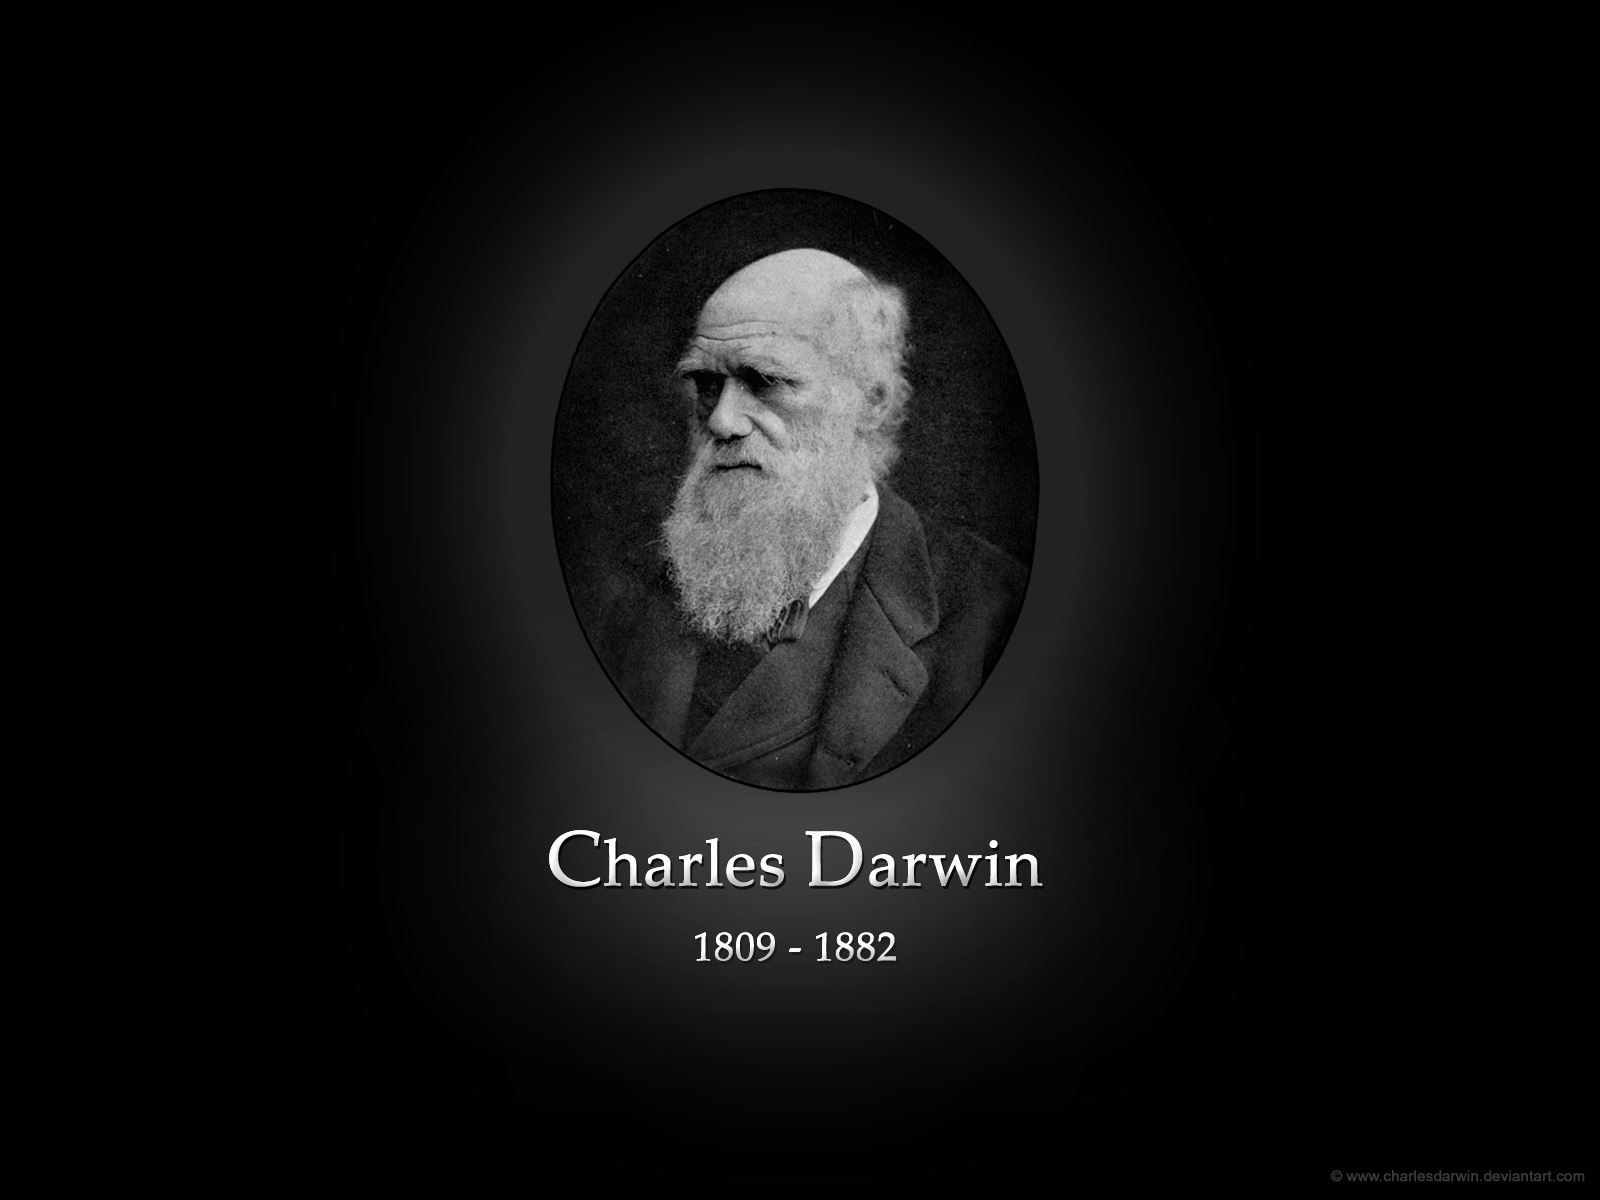 Charles Darwin: An English Naturalist